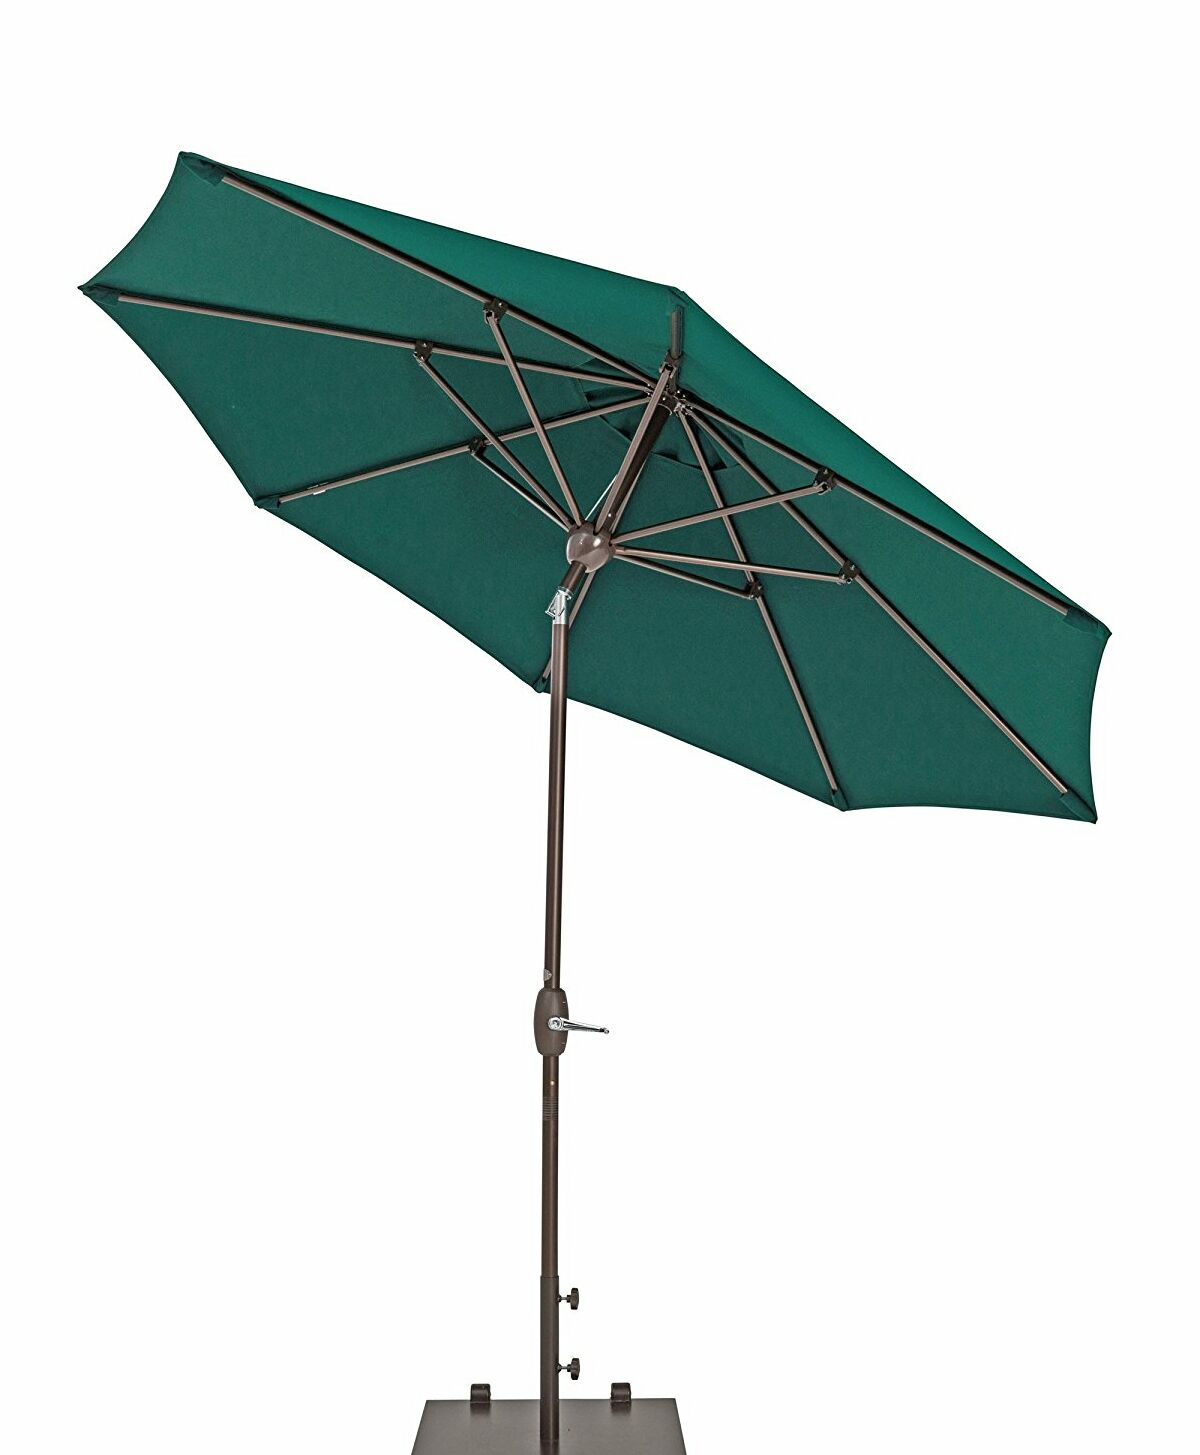 Venus Patio 11' Market Umbrella Fabric Color: Green